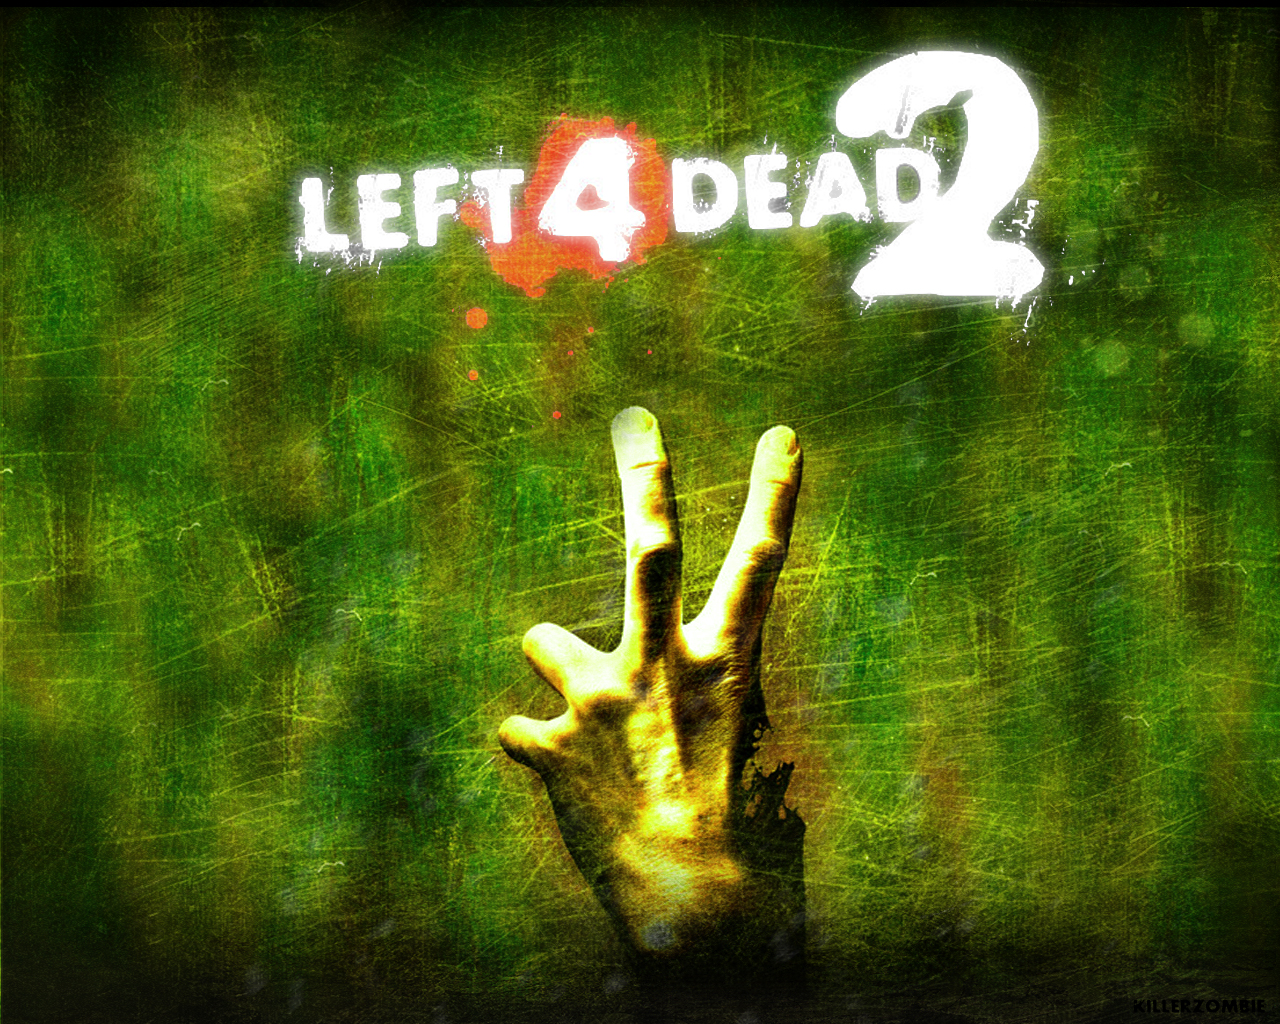 Left 4 Dead is back and it's better than ever!